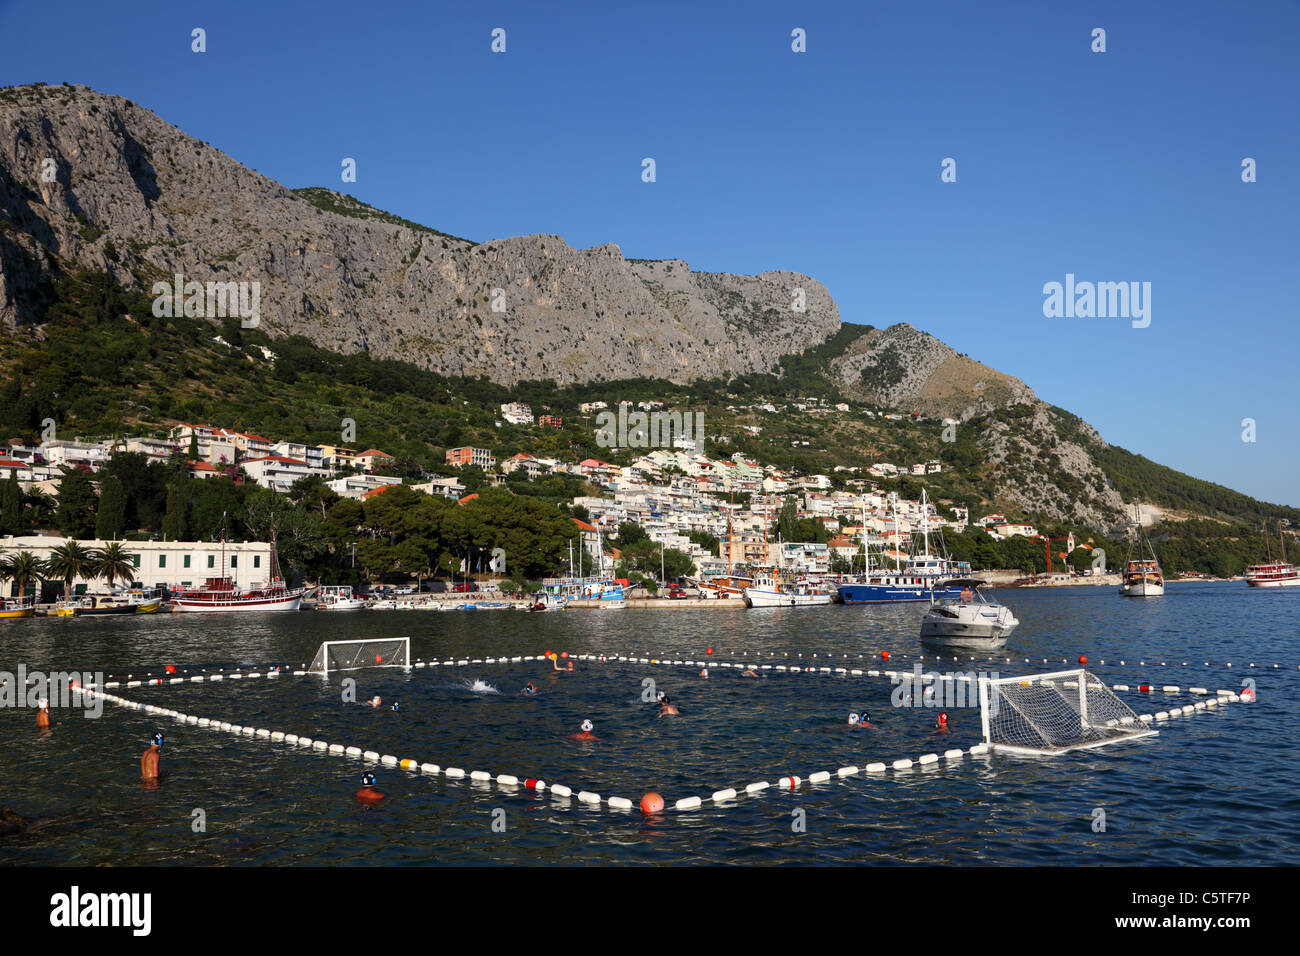 Water polo match in Croatian town Omis - Stock Image